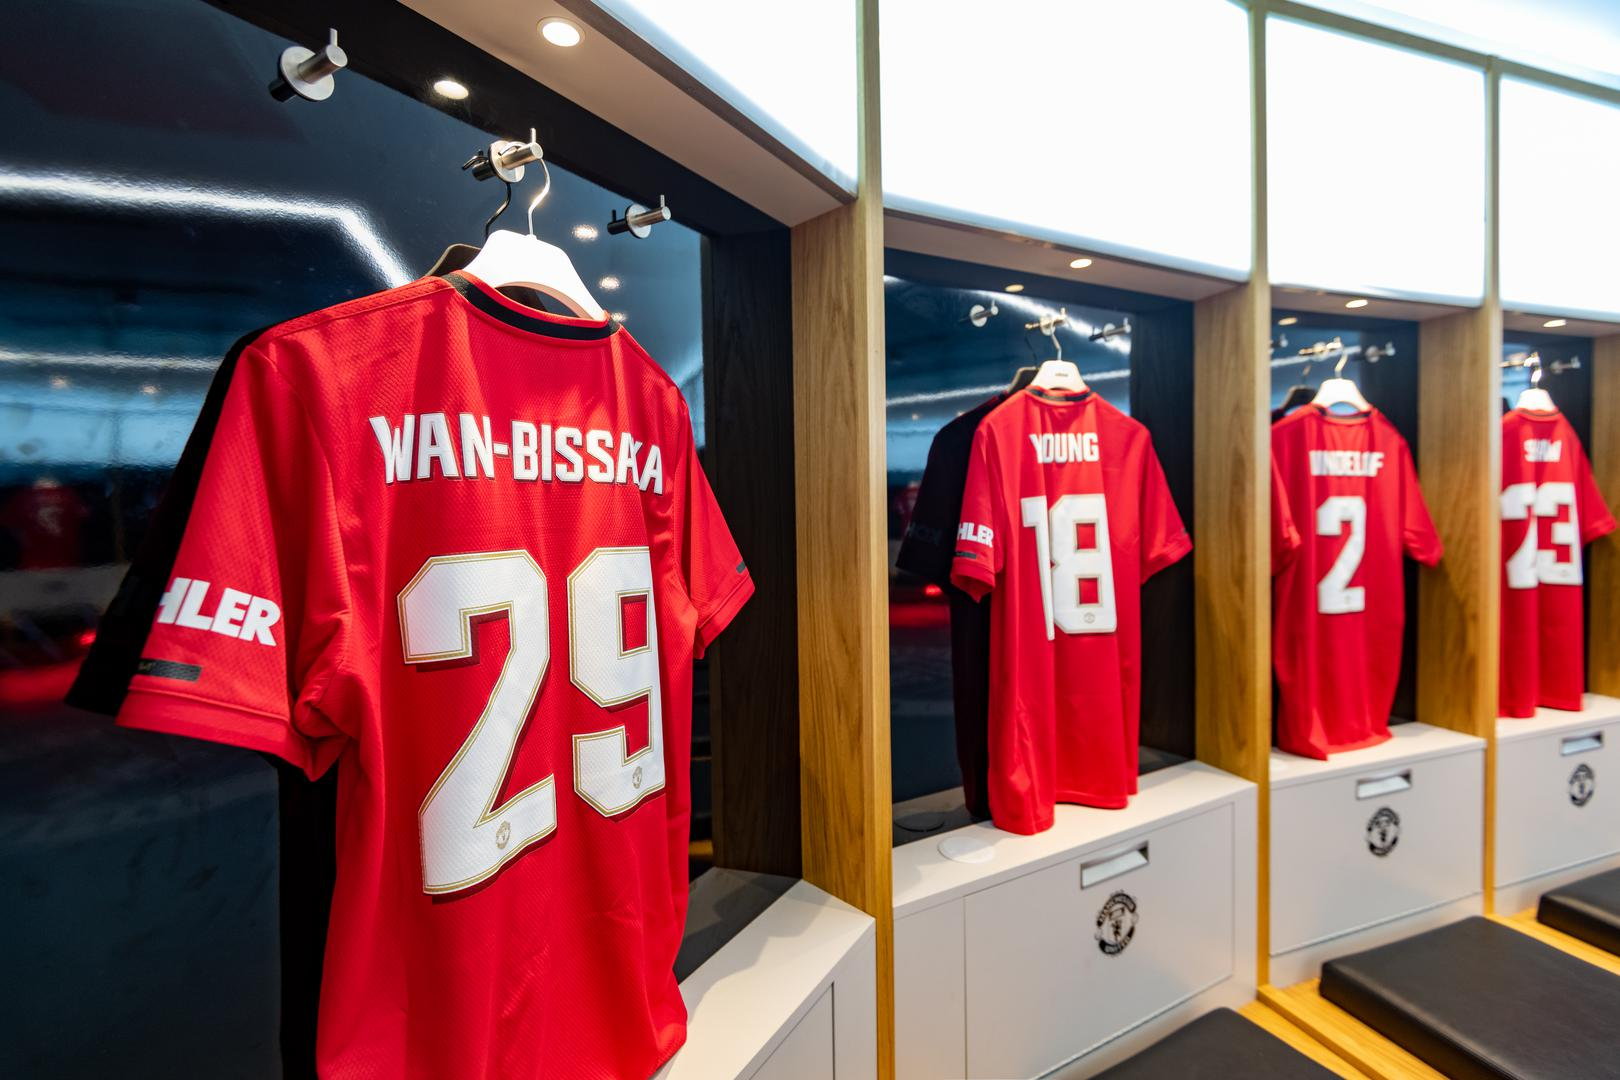 The Man Utd dressing room prior to the Chelsea match